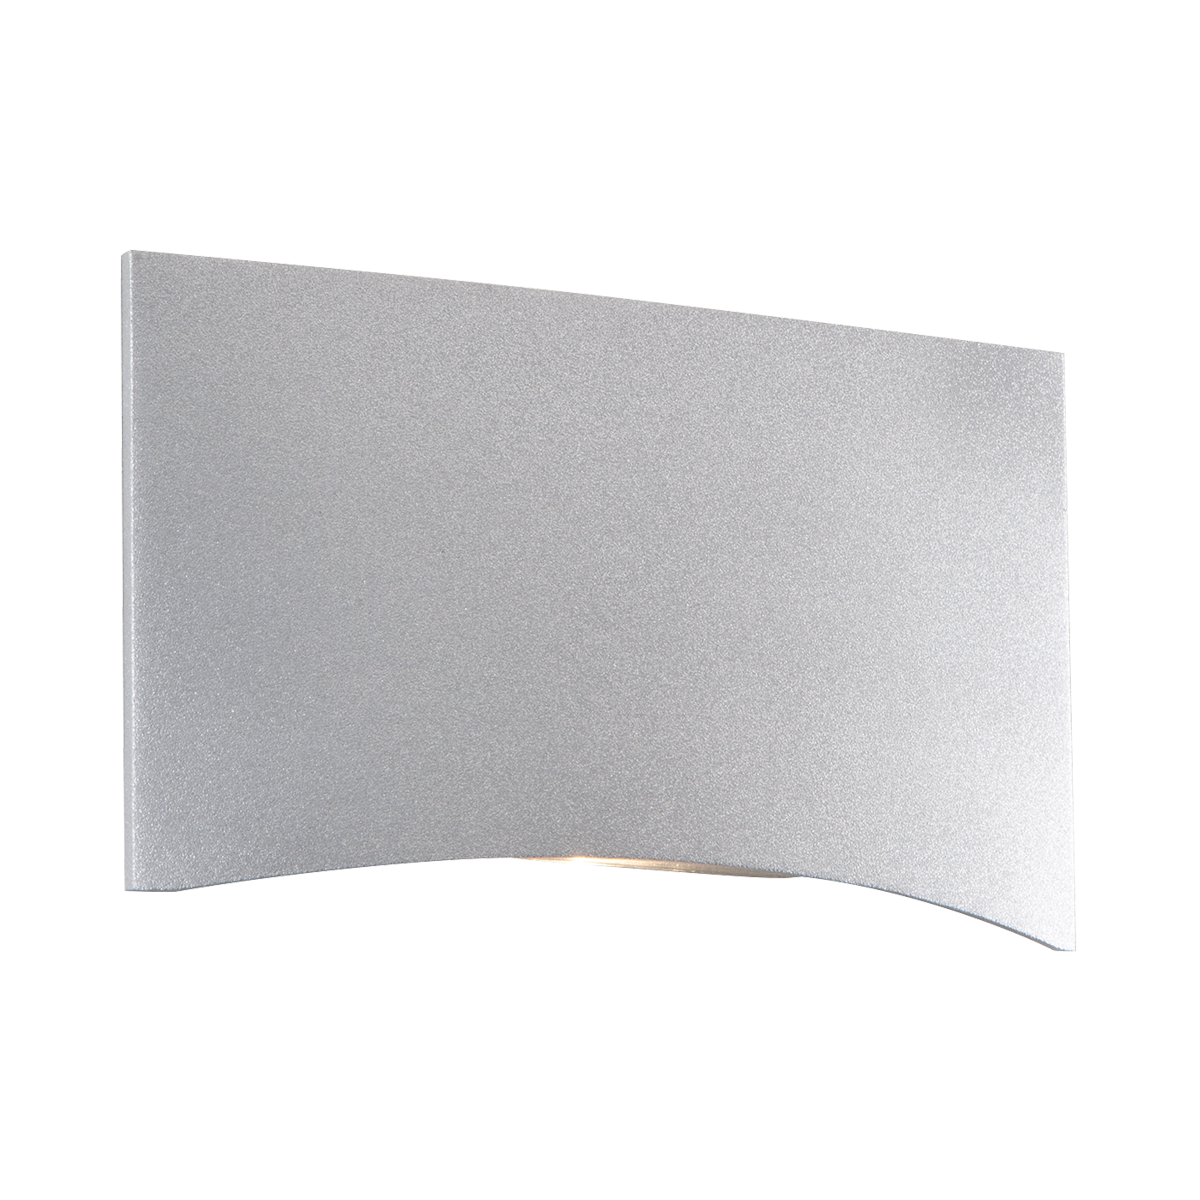 "3"" x 4-1 - 2"" LED Step Light, Silver Metallic Finish"